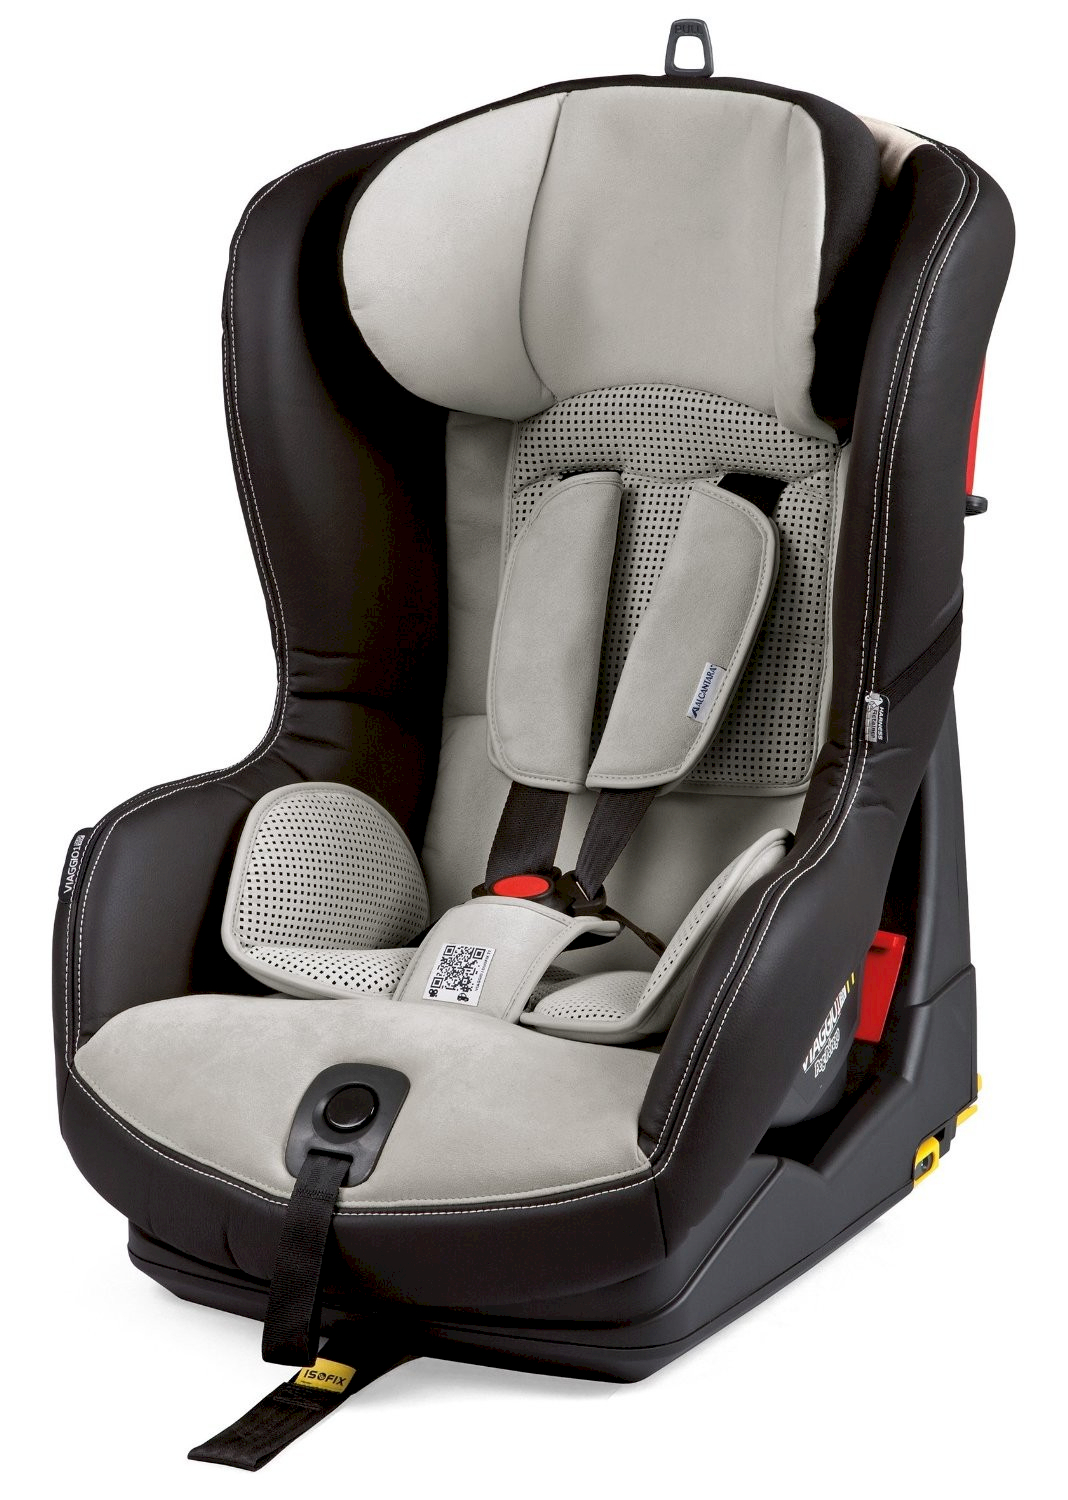 Siège-Auto Duo Fix K Peg Perego Pearl Grey